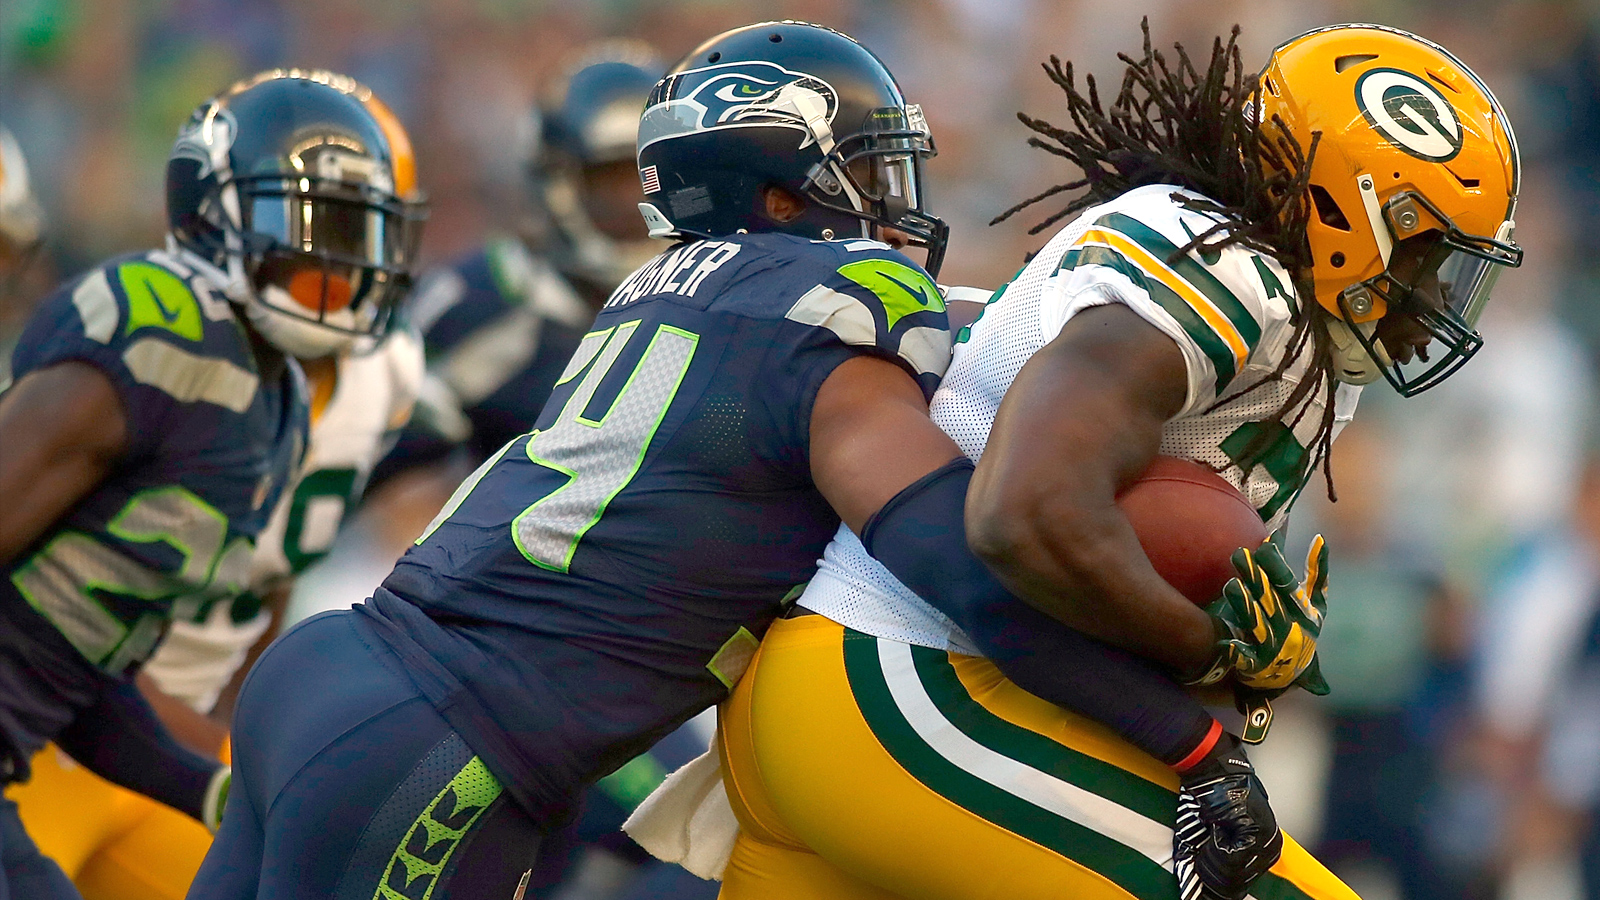 Bobby Wagner and Kam Chancellor praised by NFL.com as top tacklers